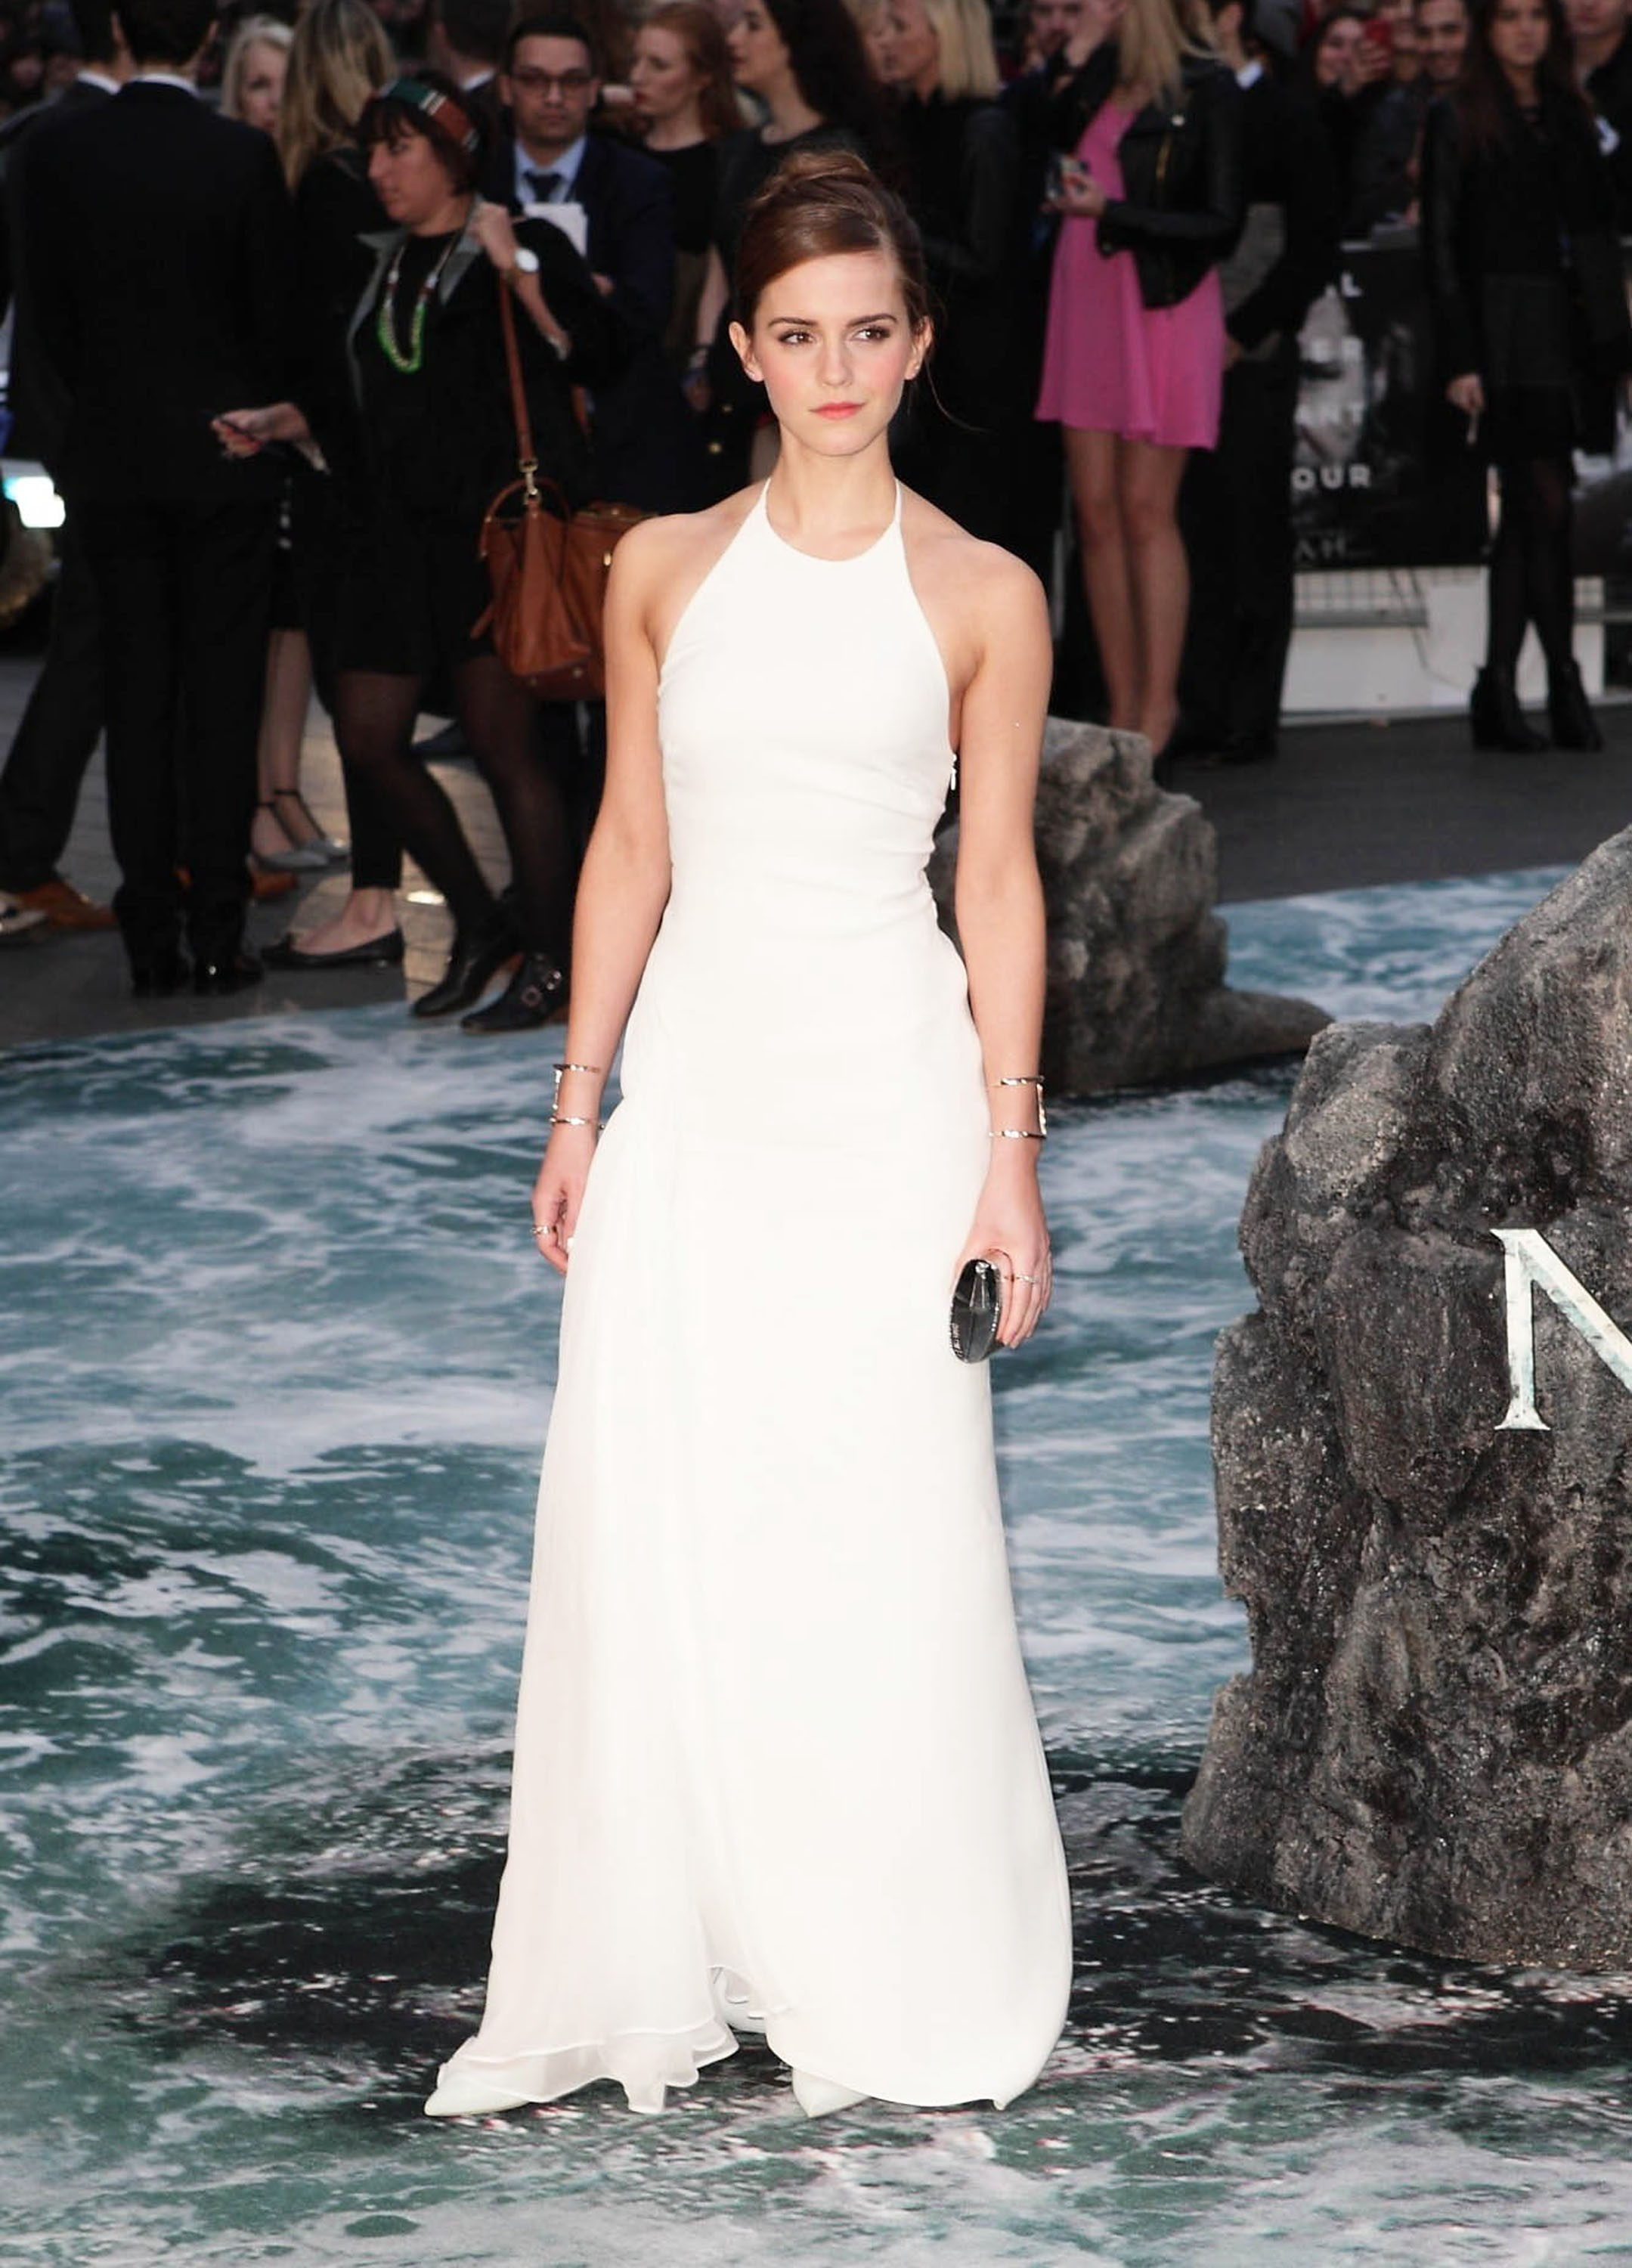 emma-watson-birthday-gallery-32316-17-compressed